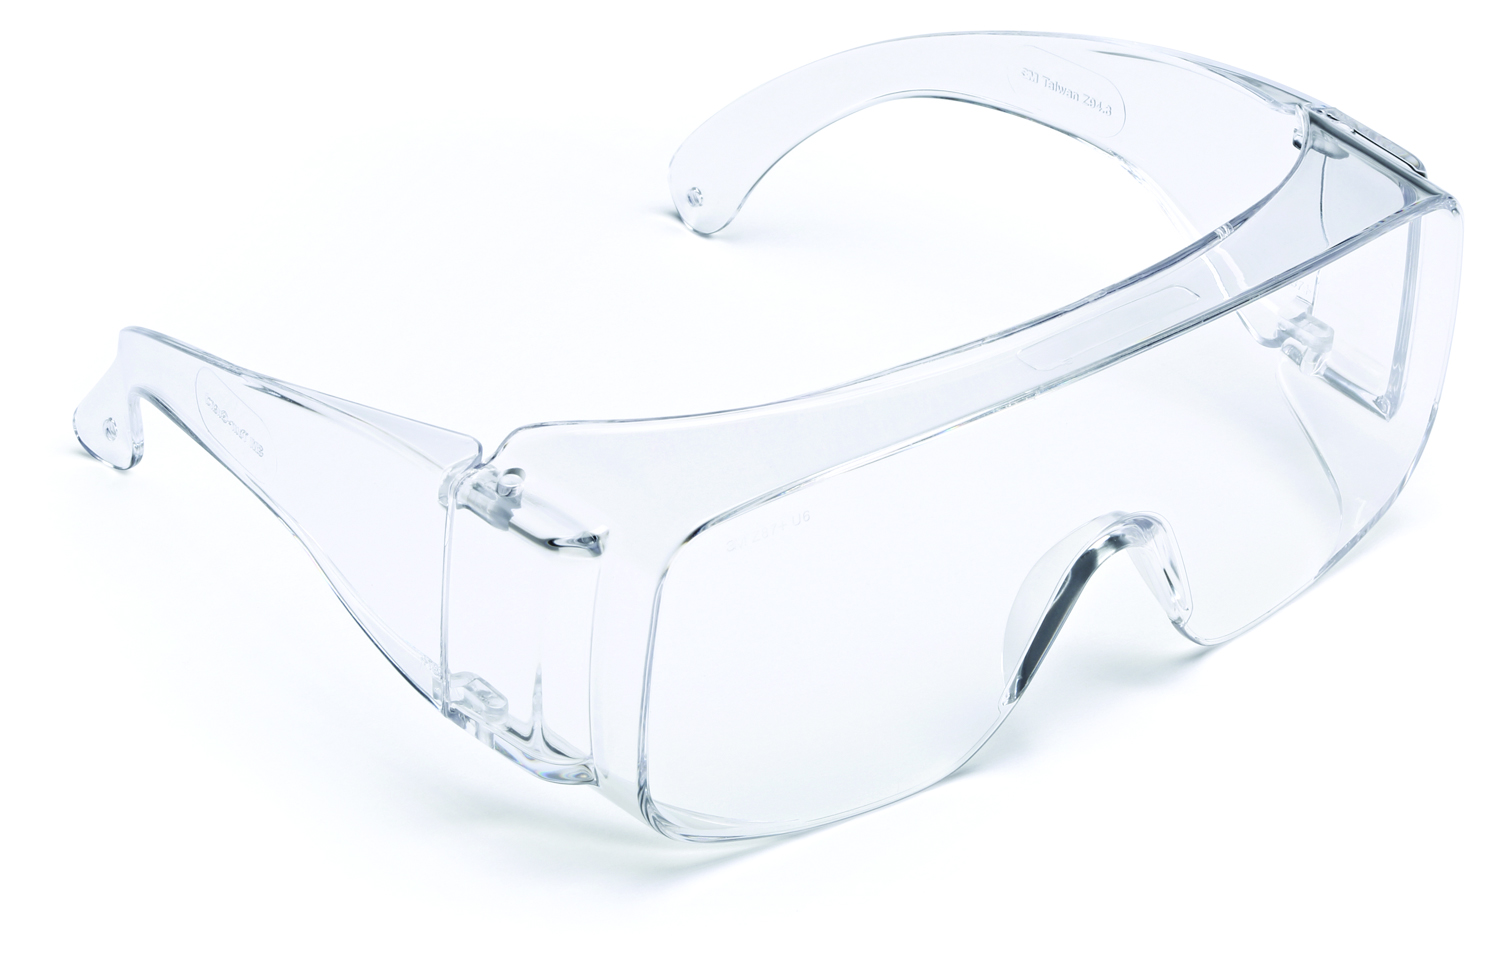 TGV01-100 - 3M™ Tour-Guard™ V Protective Eyewear-Tour-Guard Eyewear-Clear Lens, Clear Frame----UOM: 100/CS